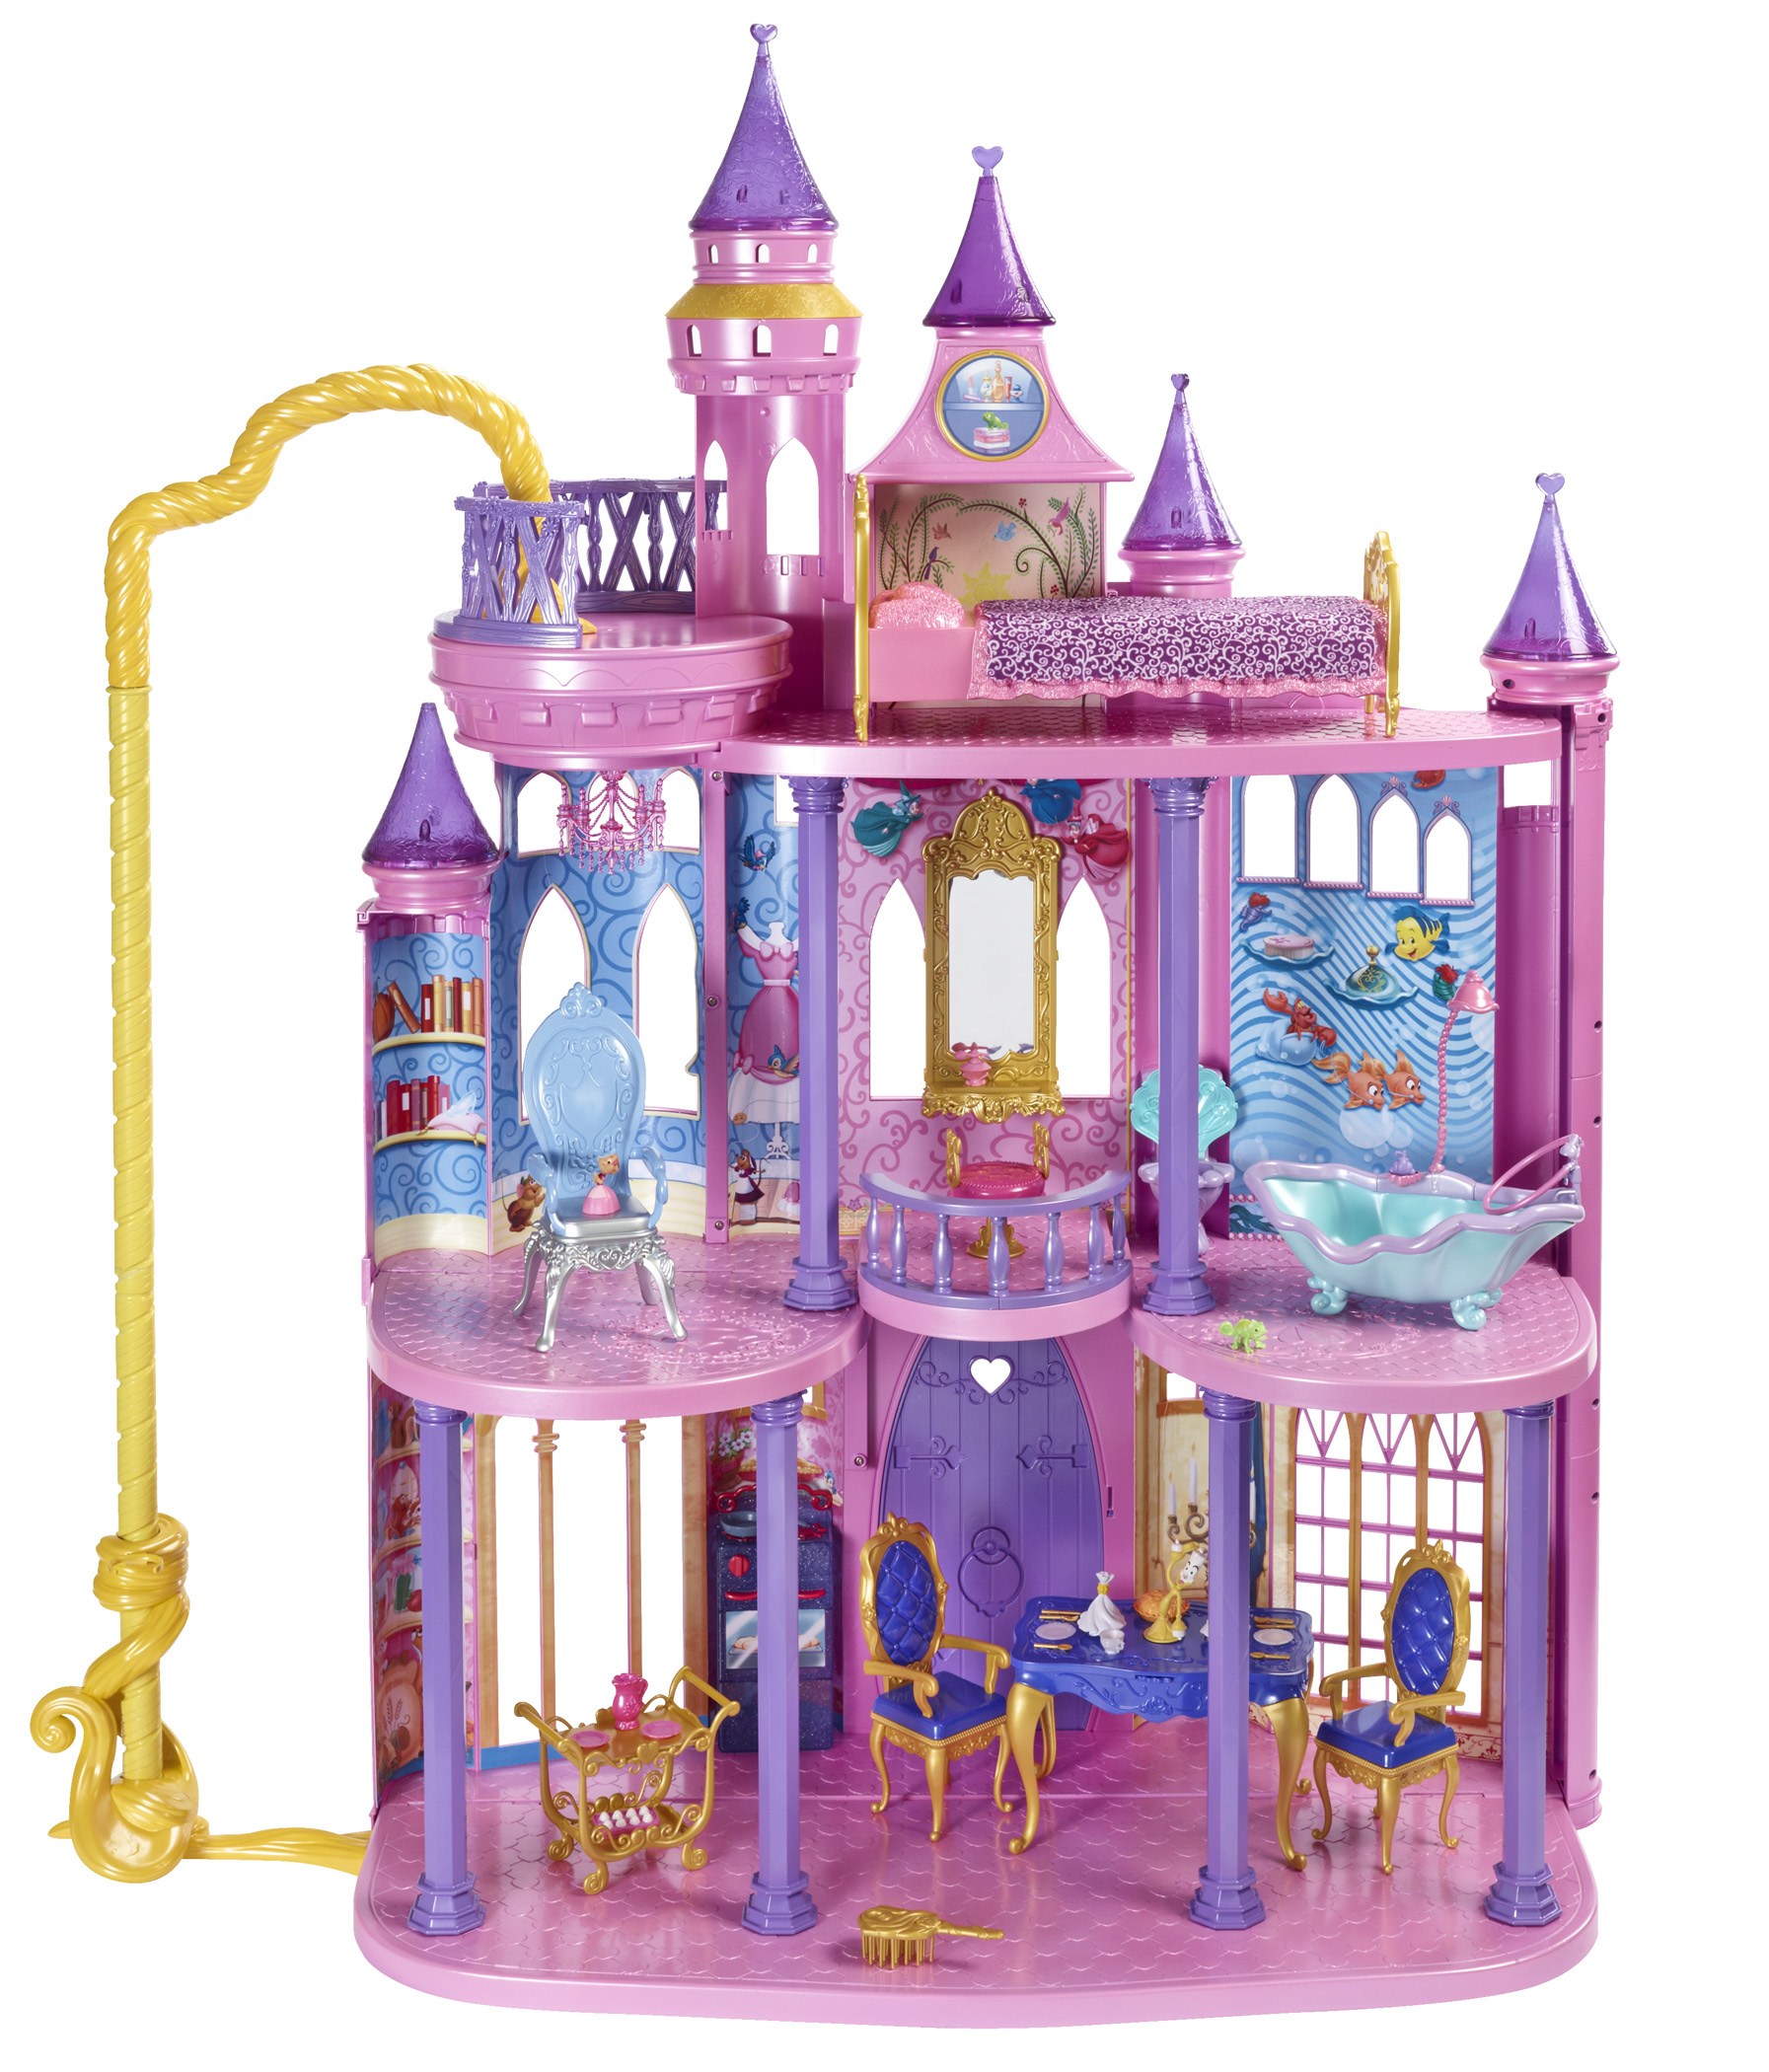 Stem is taking over the 2014 toy fair huffpost for Little princess castle